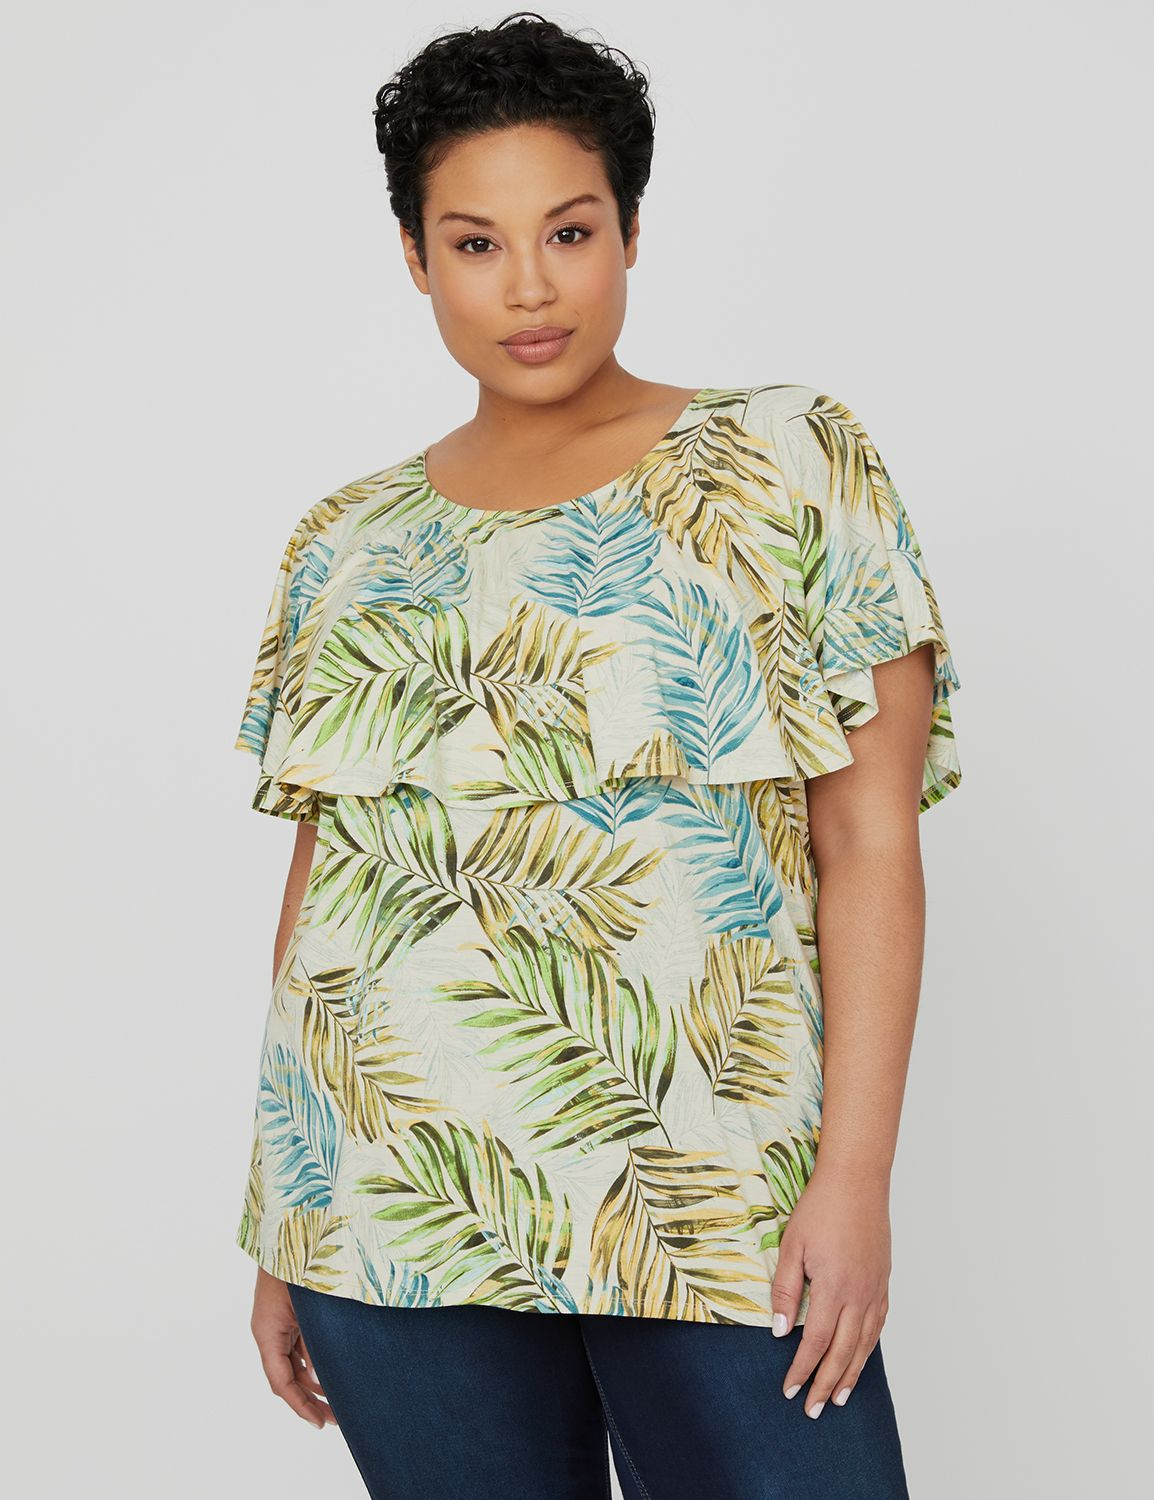 Tropical Flounce Top 1090663 FLOUNCE TROPICAL PRINT MP-300105137